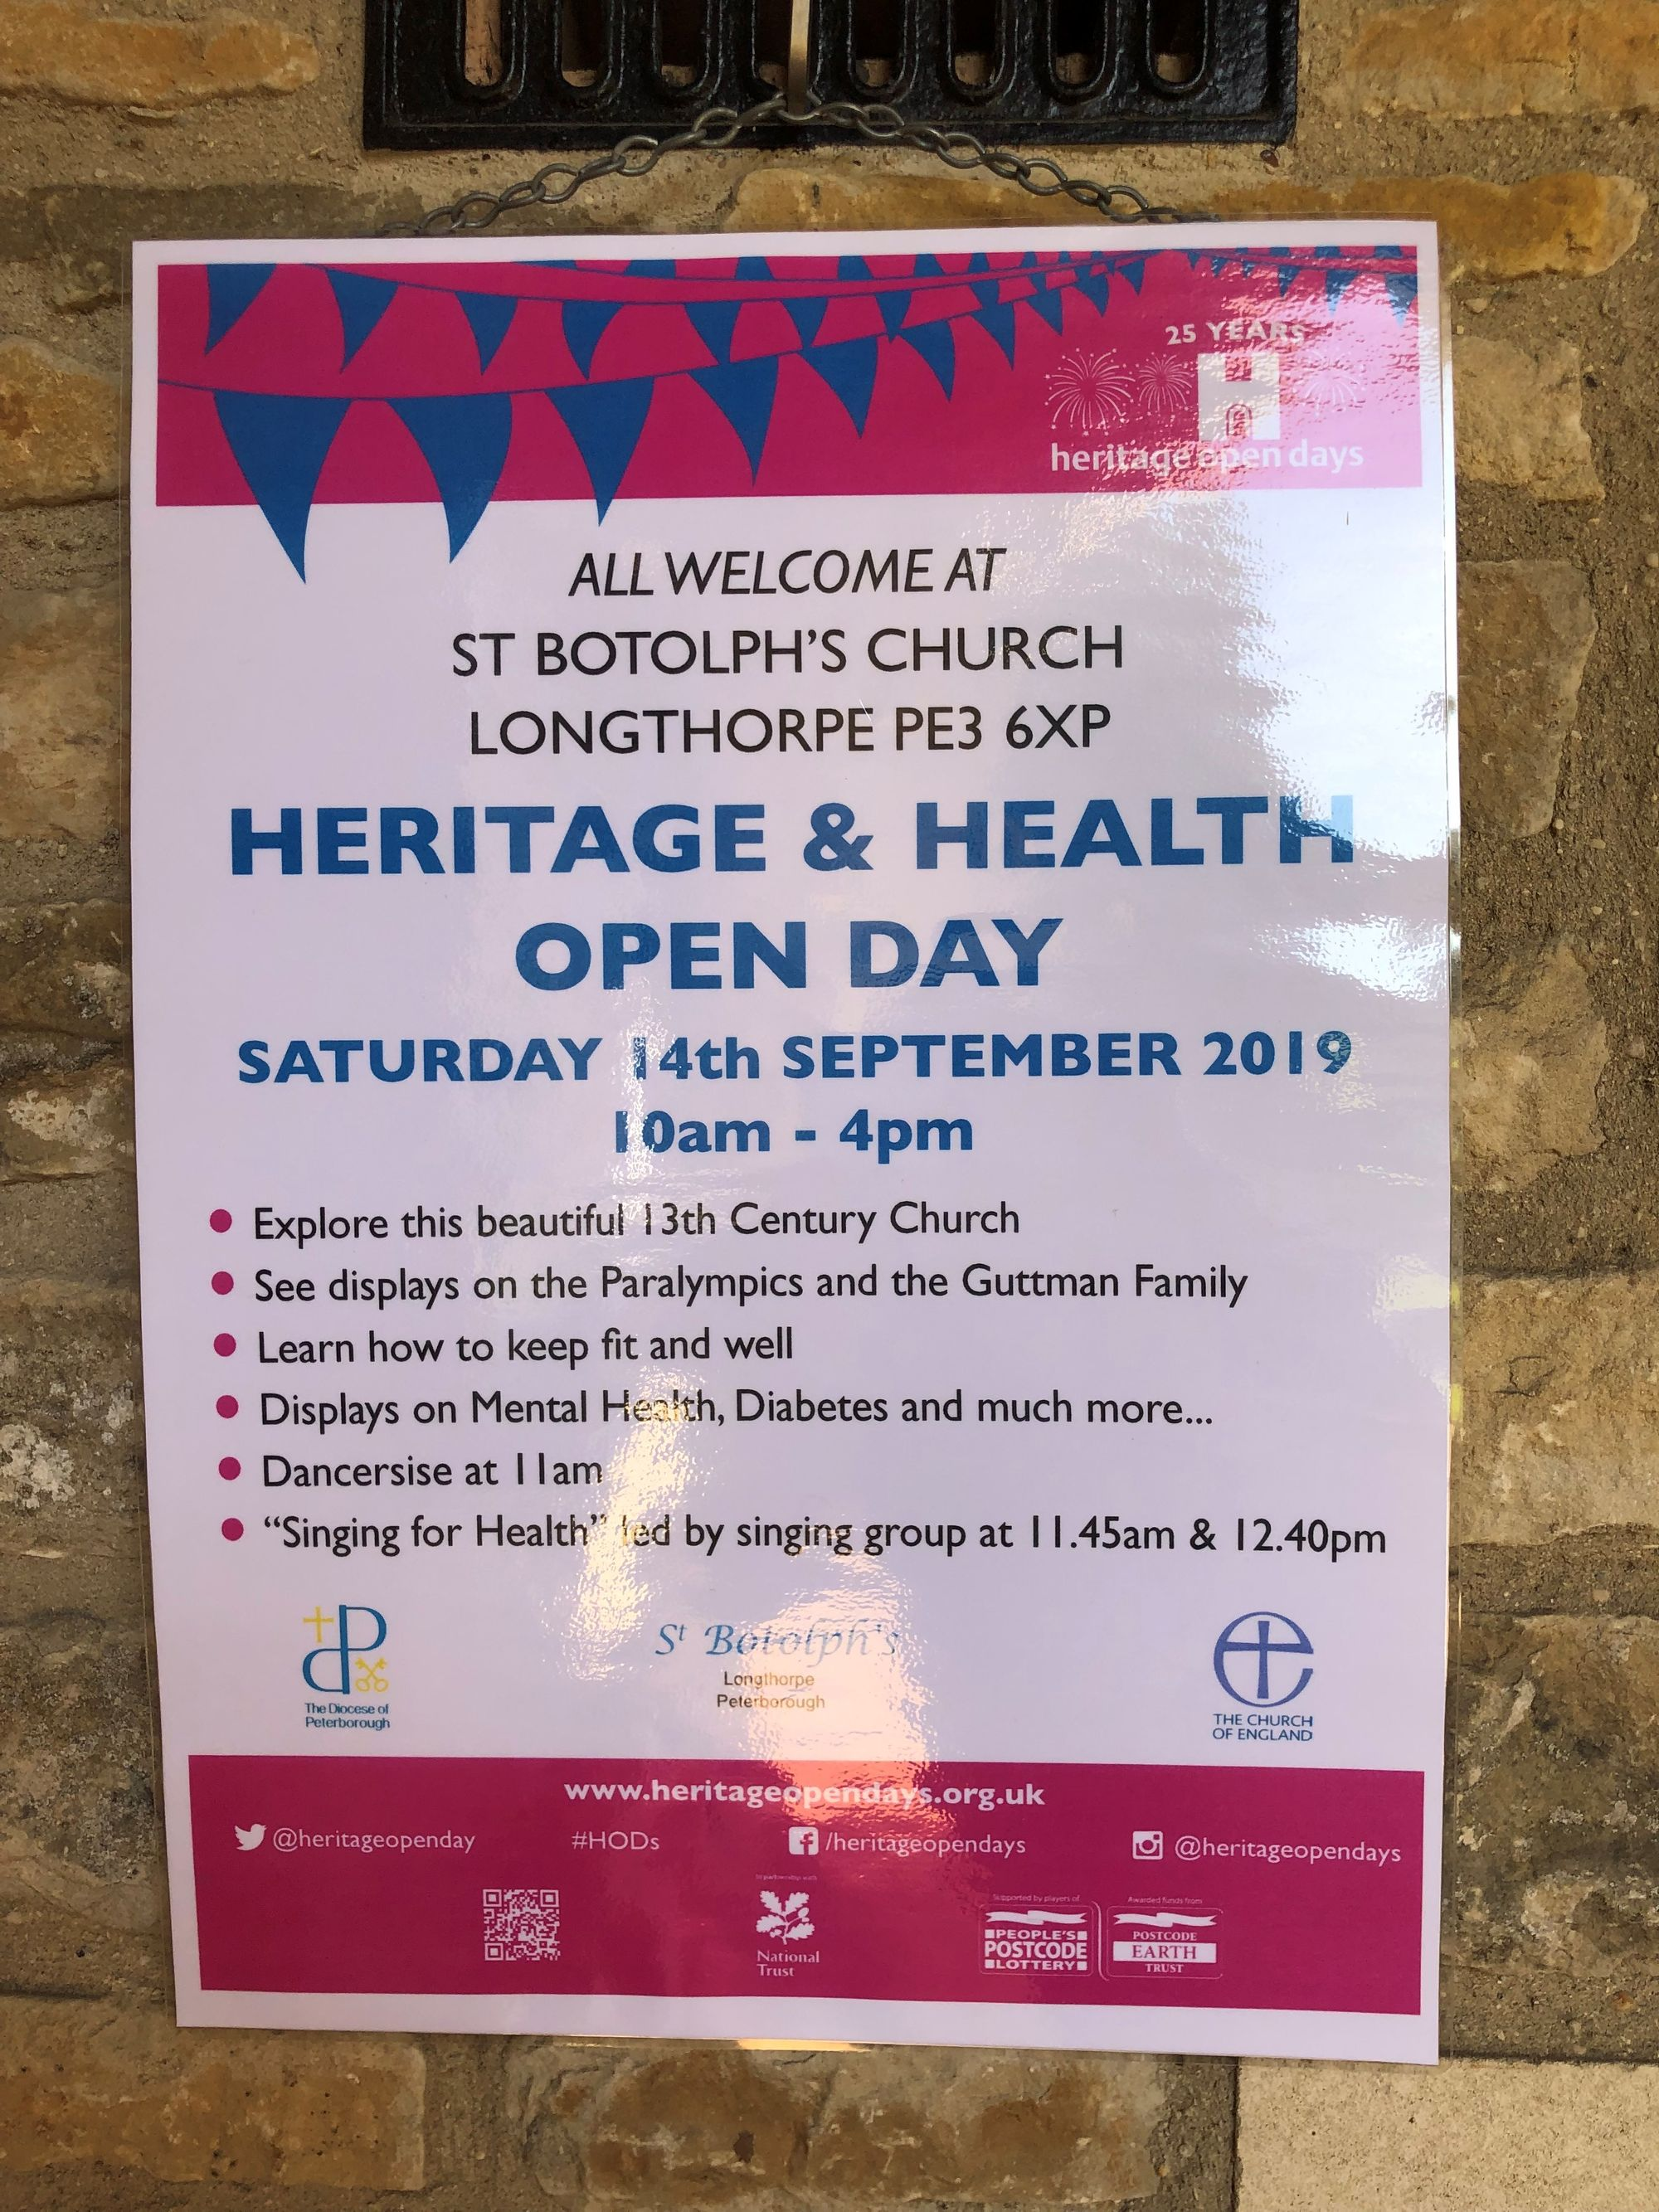 St Botolphs Church Heritage & Mini Health Day, including the Ride & Stride for Churches